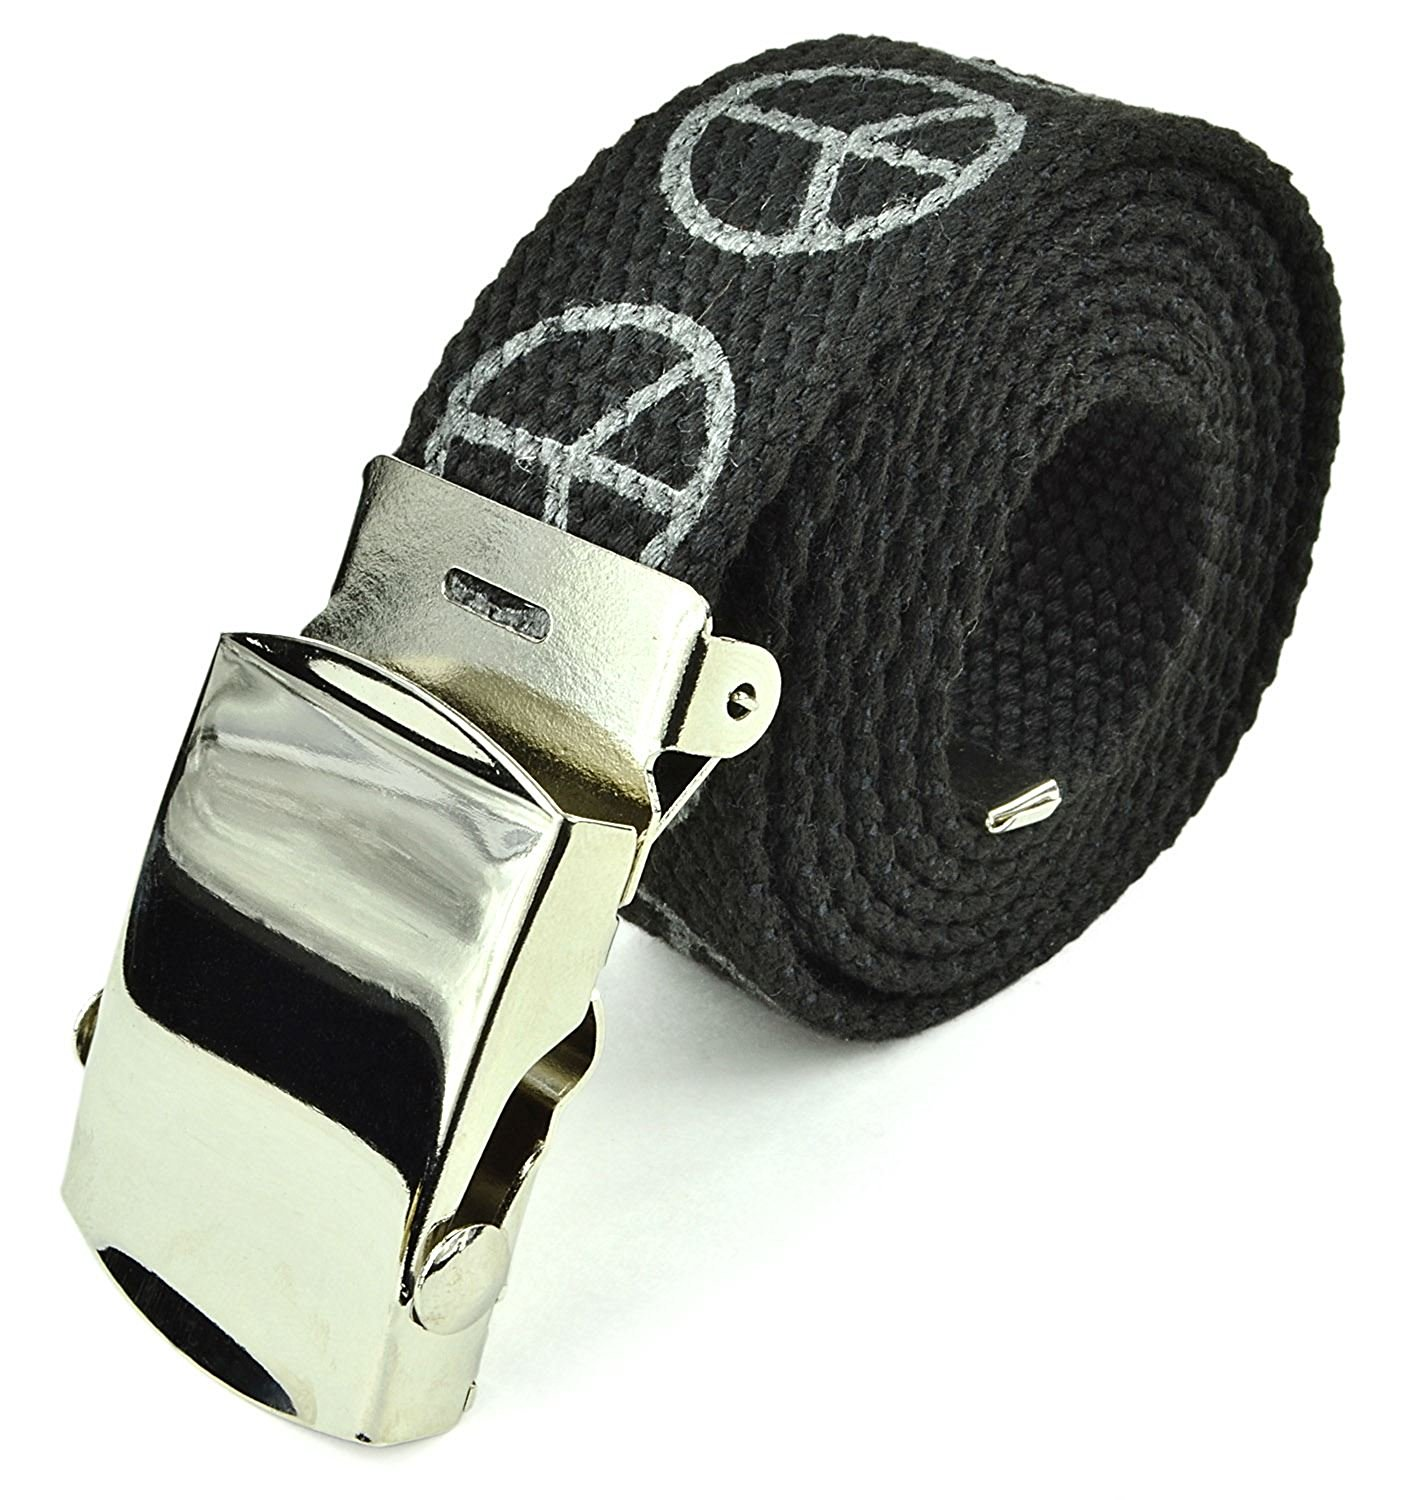 "Canvas Web Belt Military Tactical Style Slide Buckle 44"" / 46"" Long - Black"